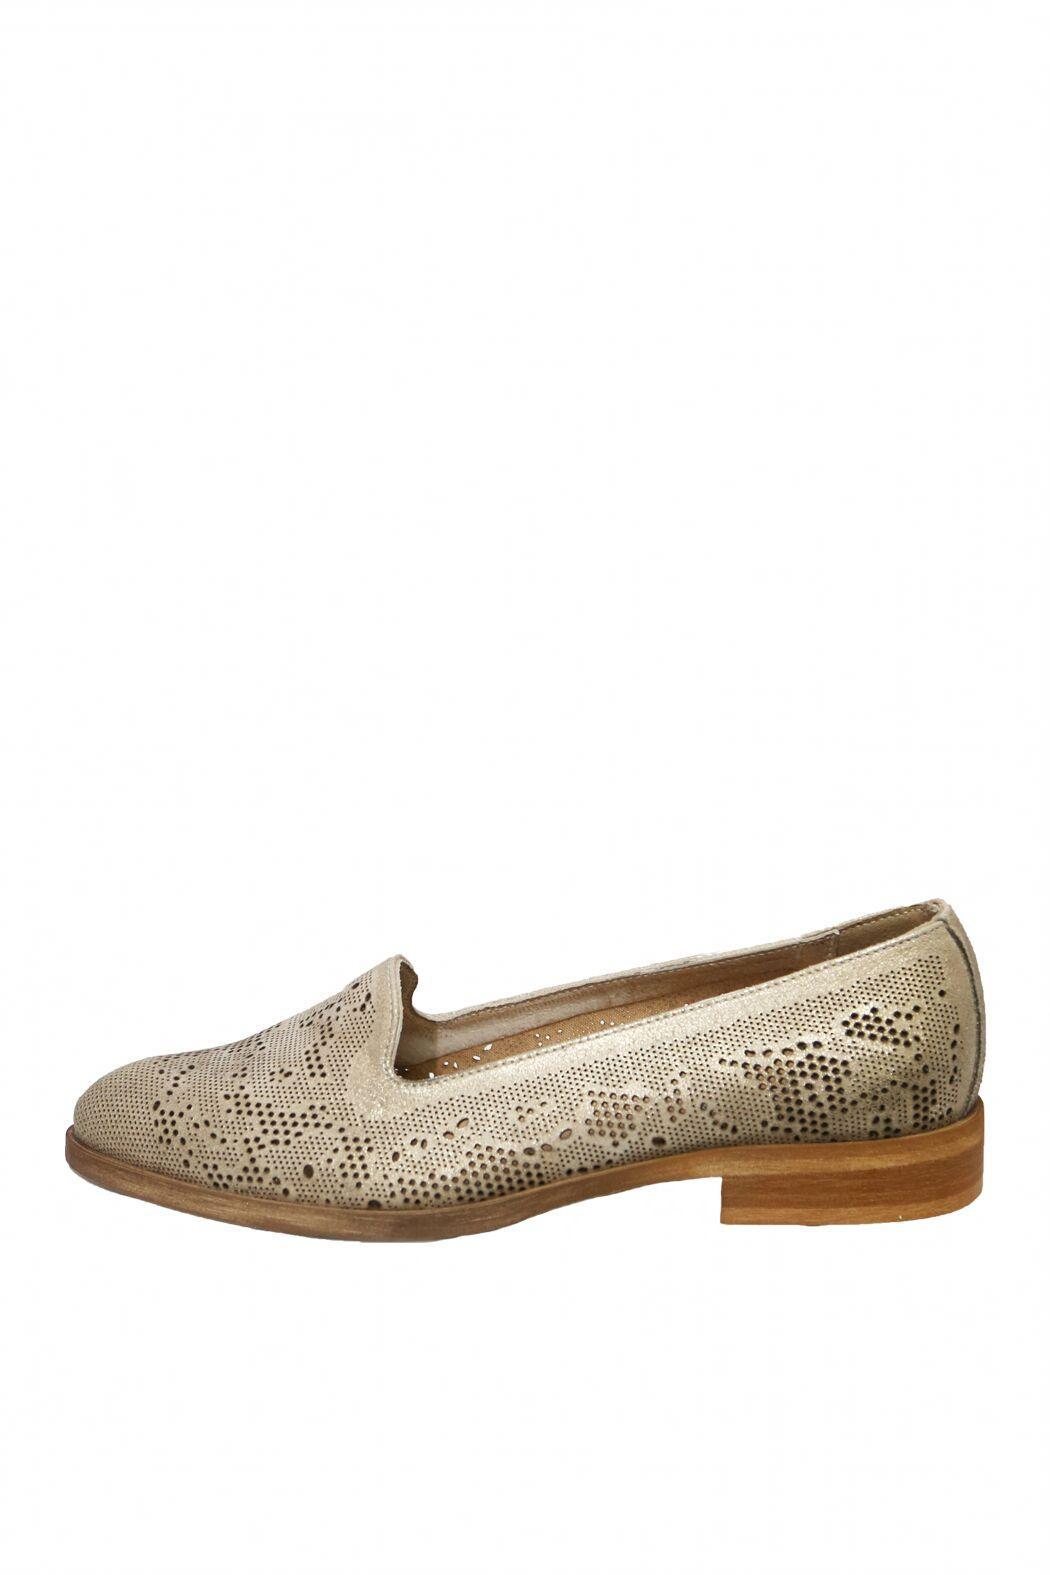 Donna Piu Brown Dressy Loafer - Front Cropped Image